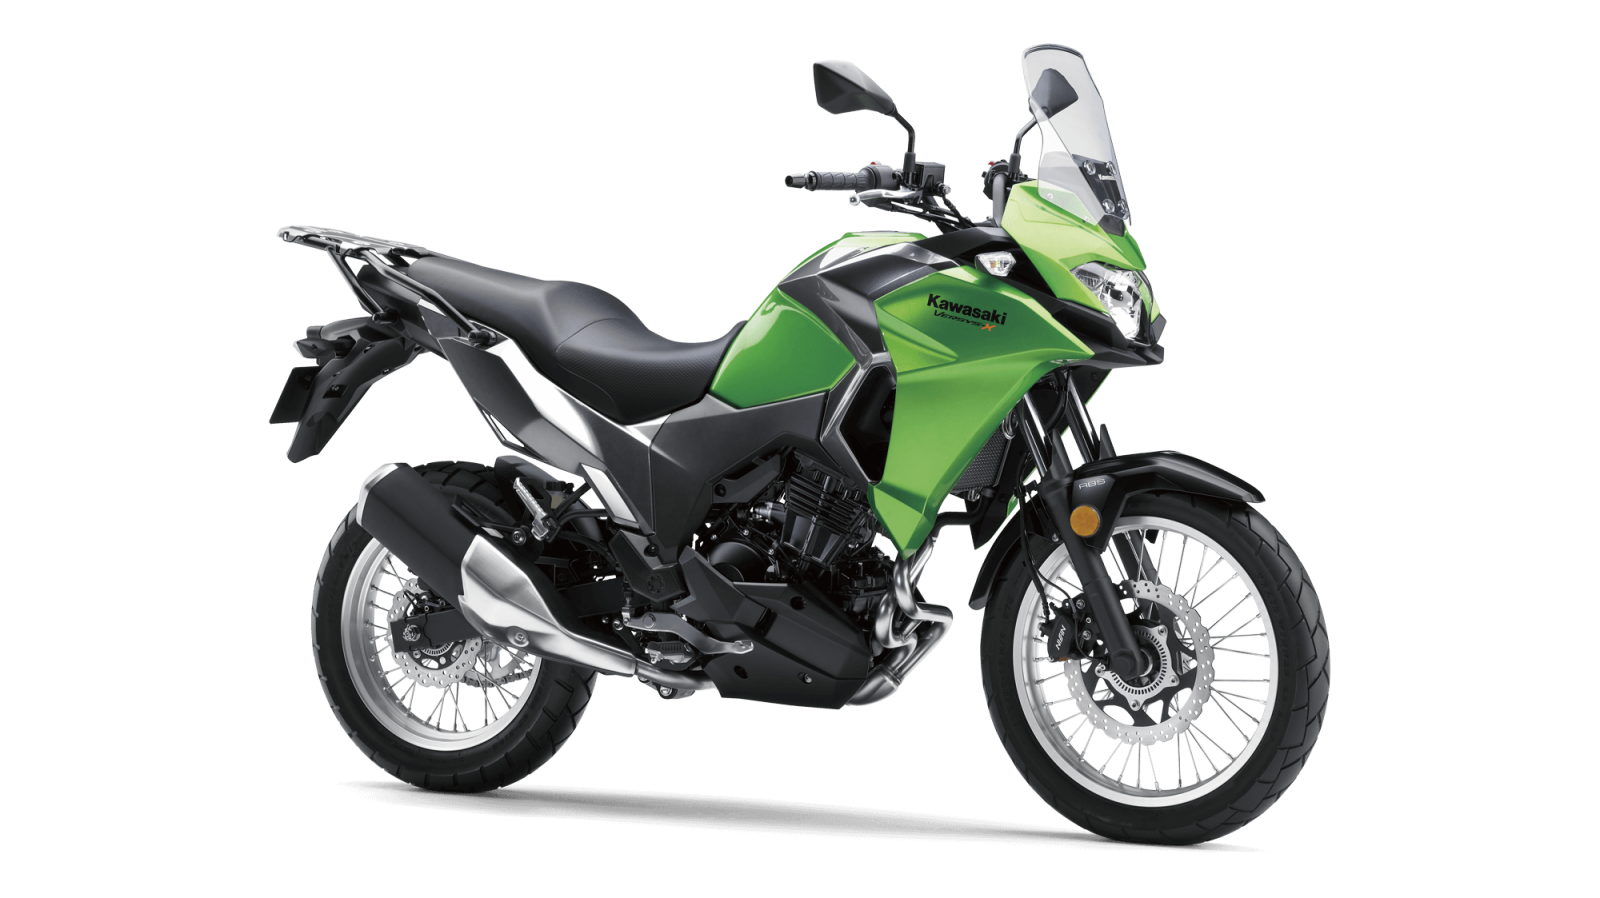 The 10 Best Buys In Motorcycles For 2019 Kawasaki Motorcycles